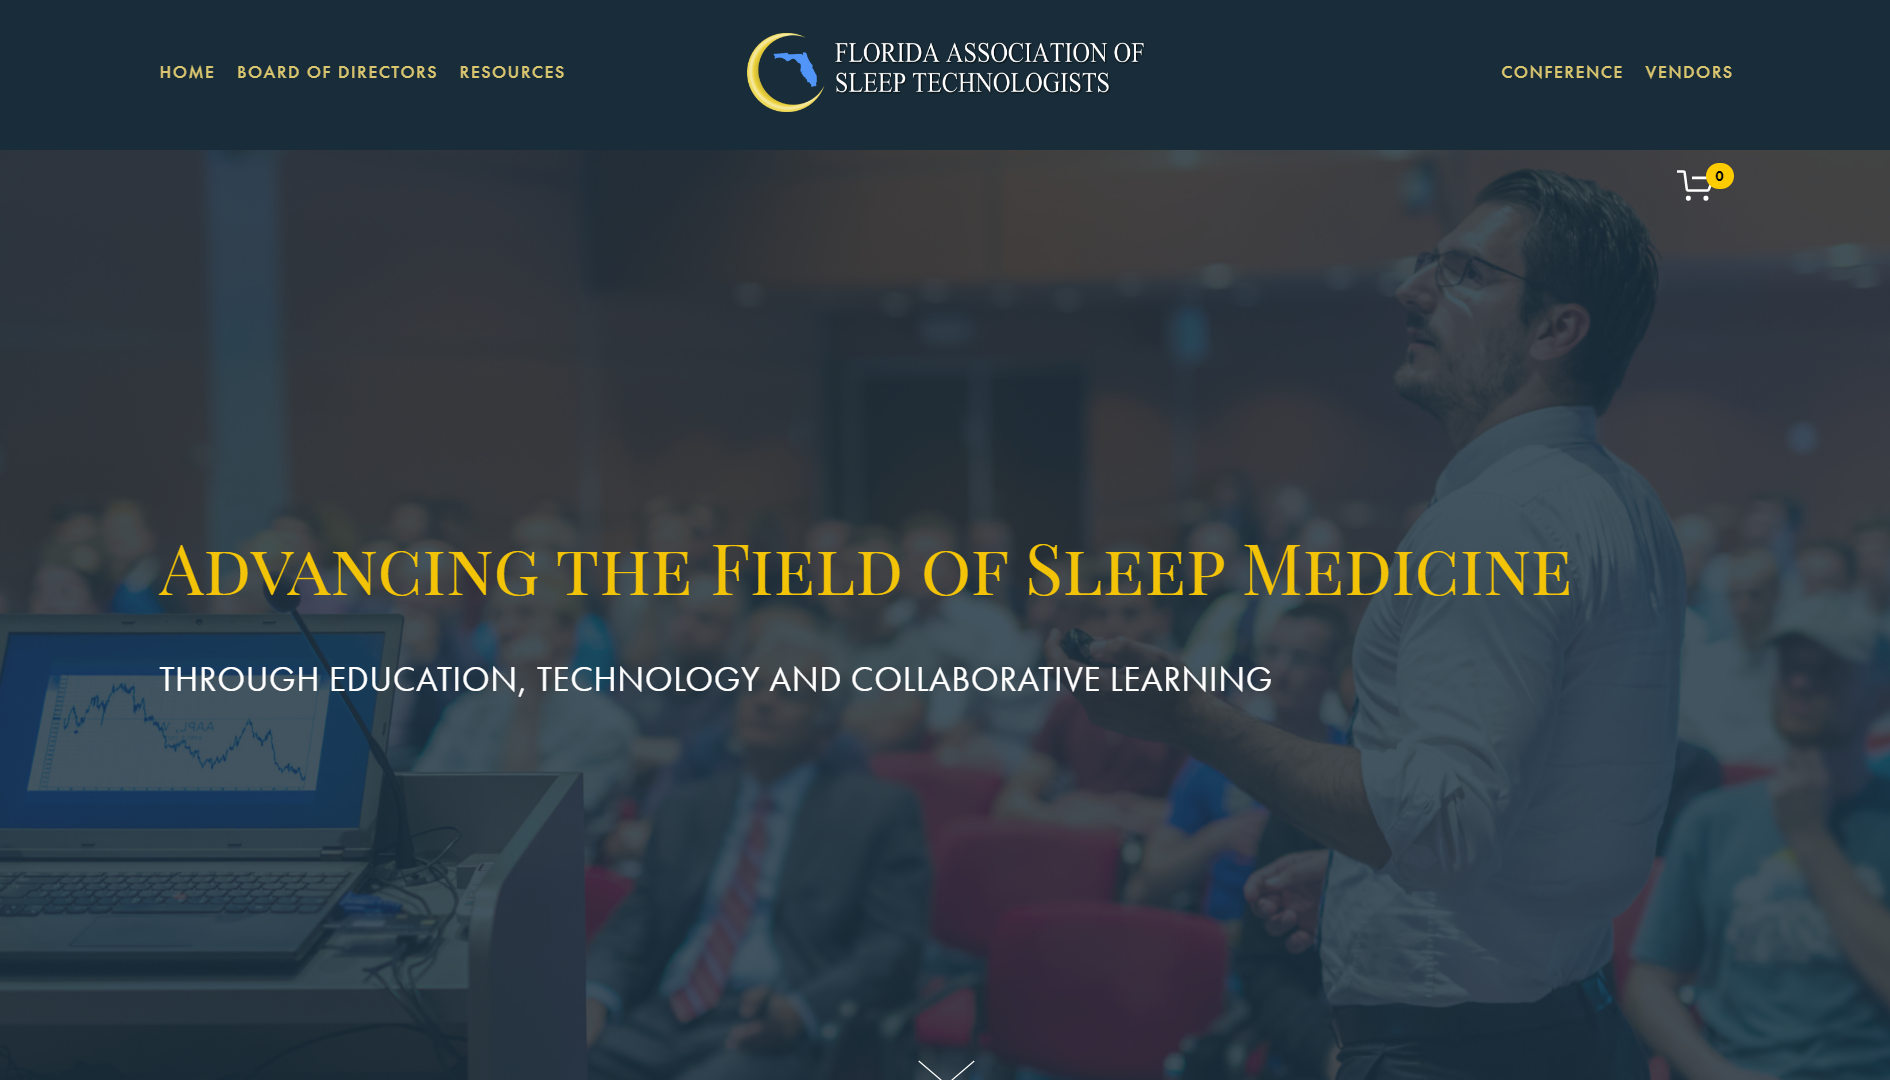 Florida Association of Sleep Technologists